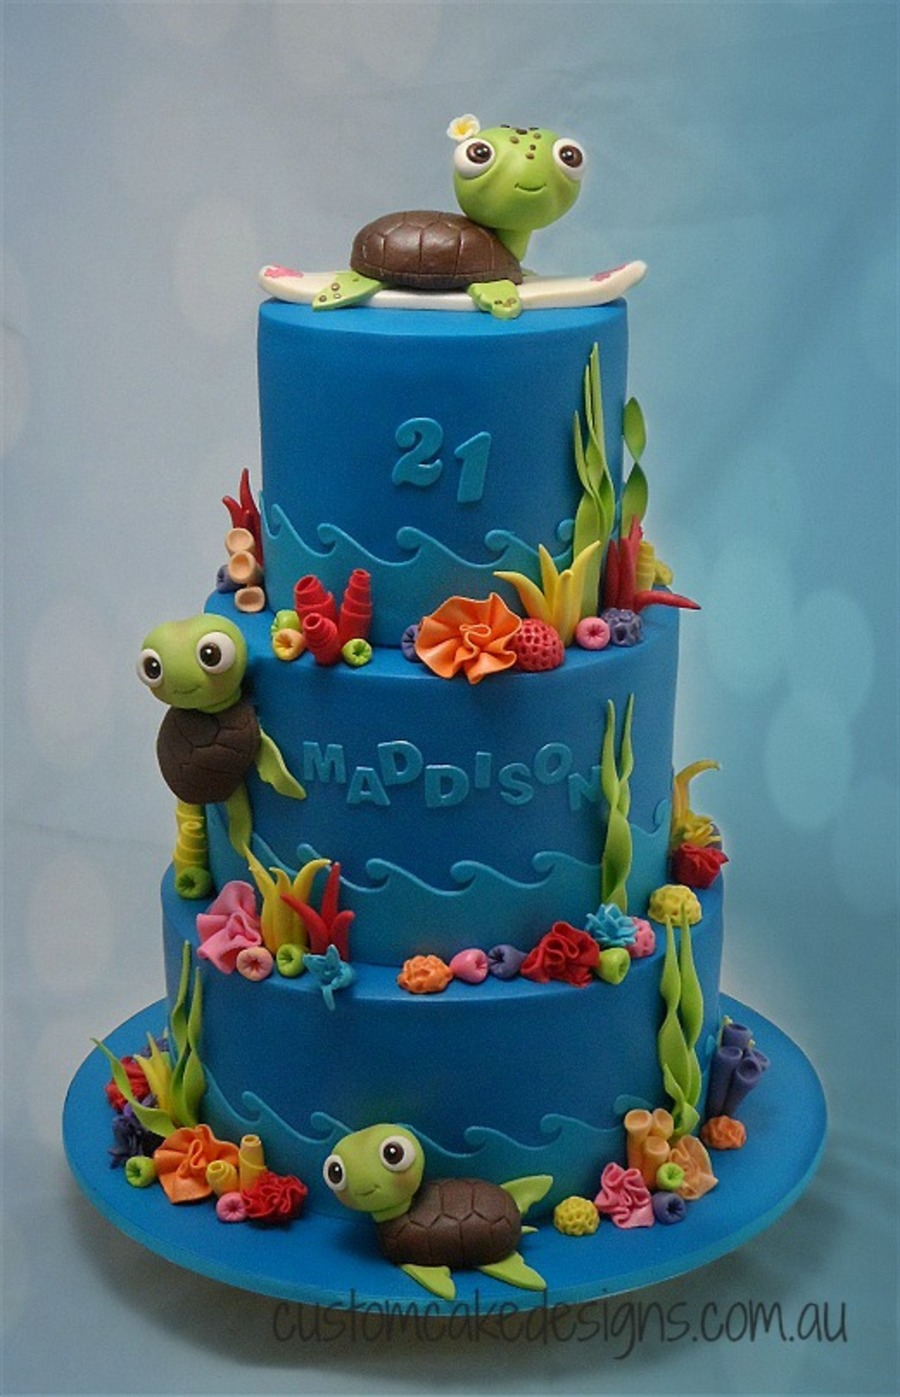 This Cake Was Made For Maddison Who Is Turning 21 This Weekend And Having A Under The Sea Fantasia Themed Party Her Sister Also Wanted To on Cake Central